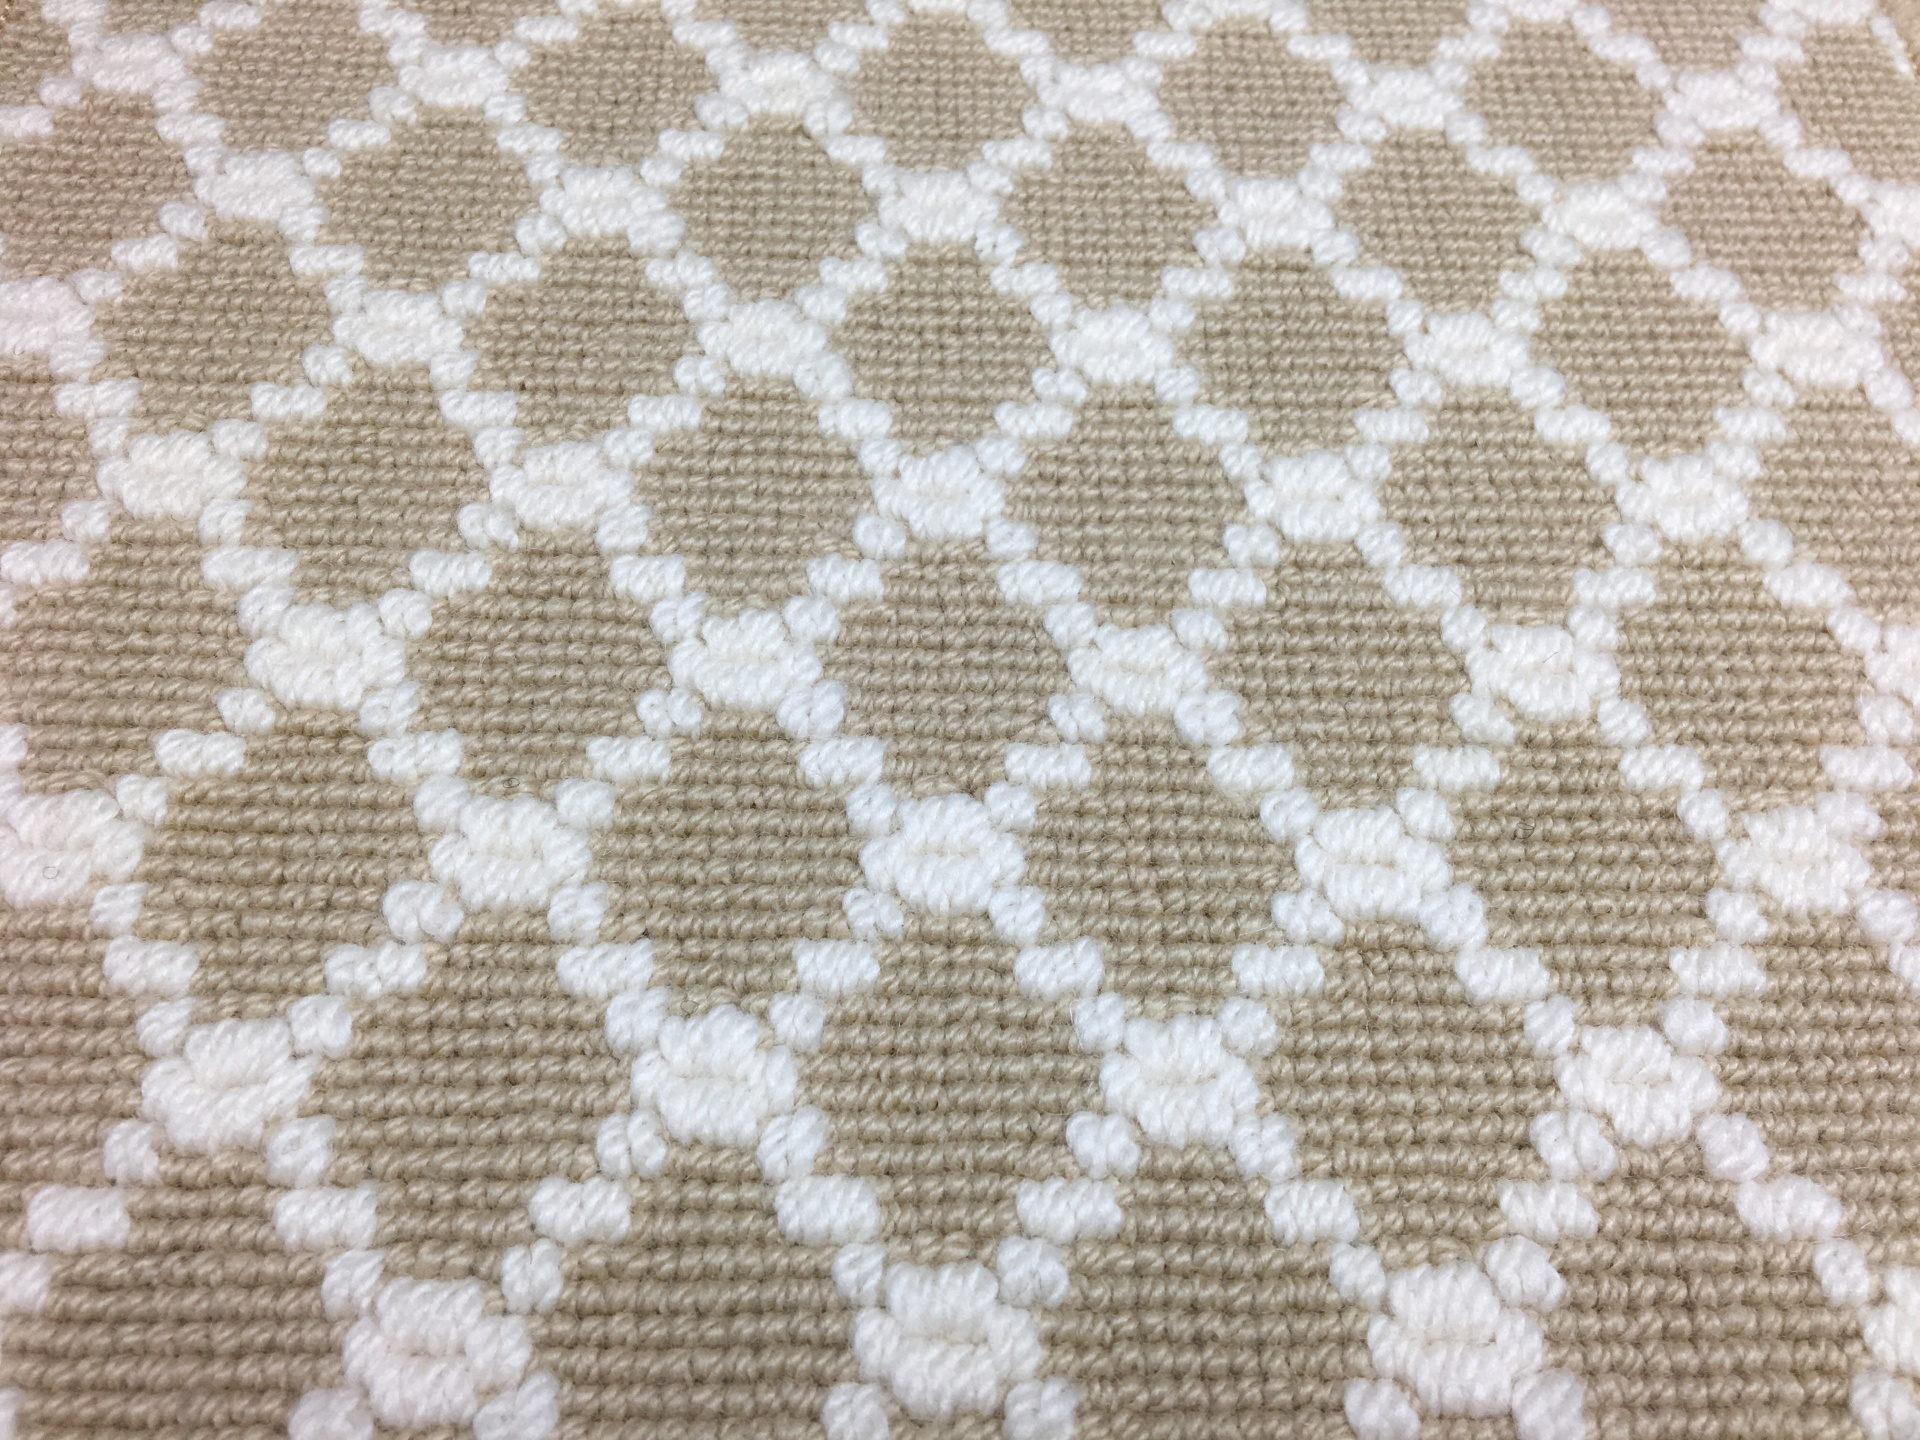 Carpet, area rugs, natural fibers, carpeting, rug, wall to wall carpet, plush, thick, comfortable, soft, clean carpet, glen eden, glen, eden, glen eden carpet